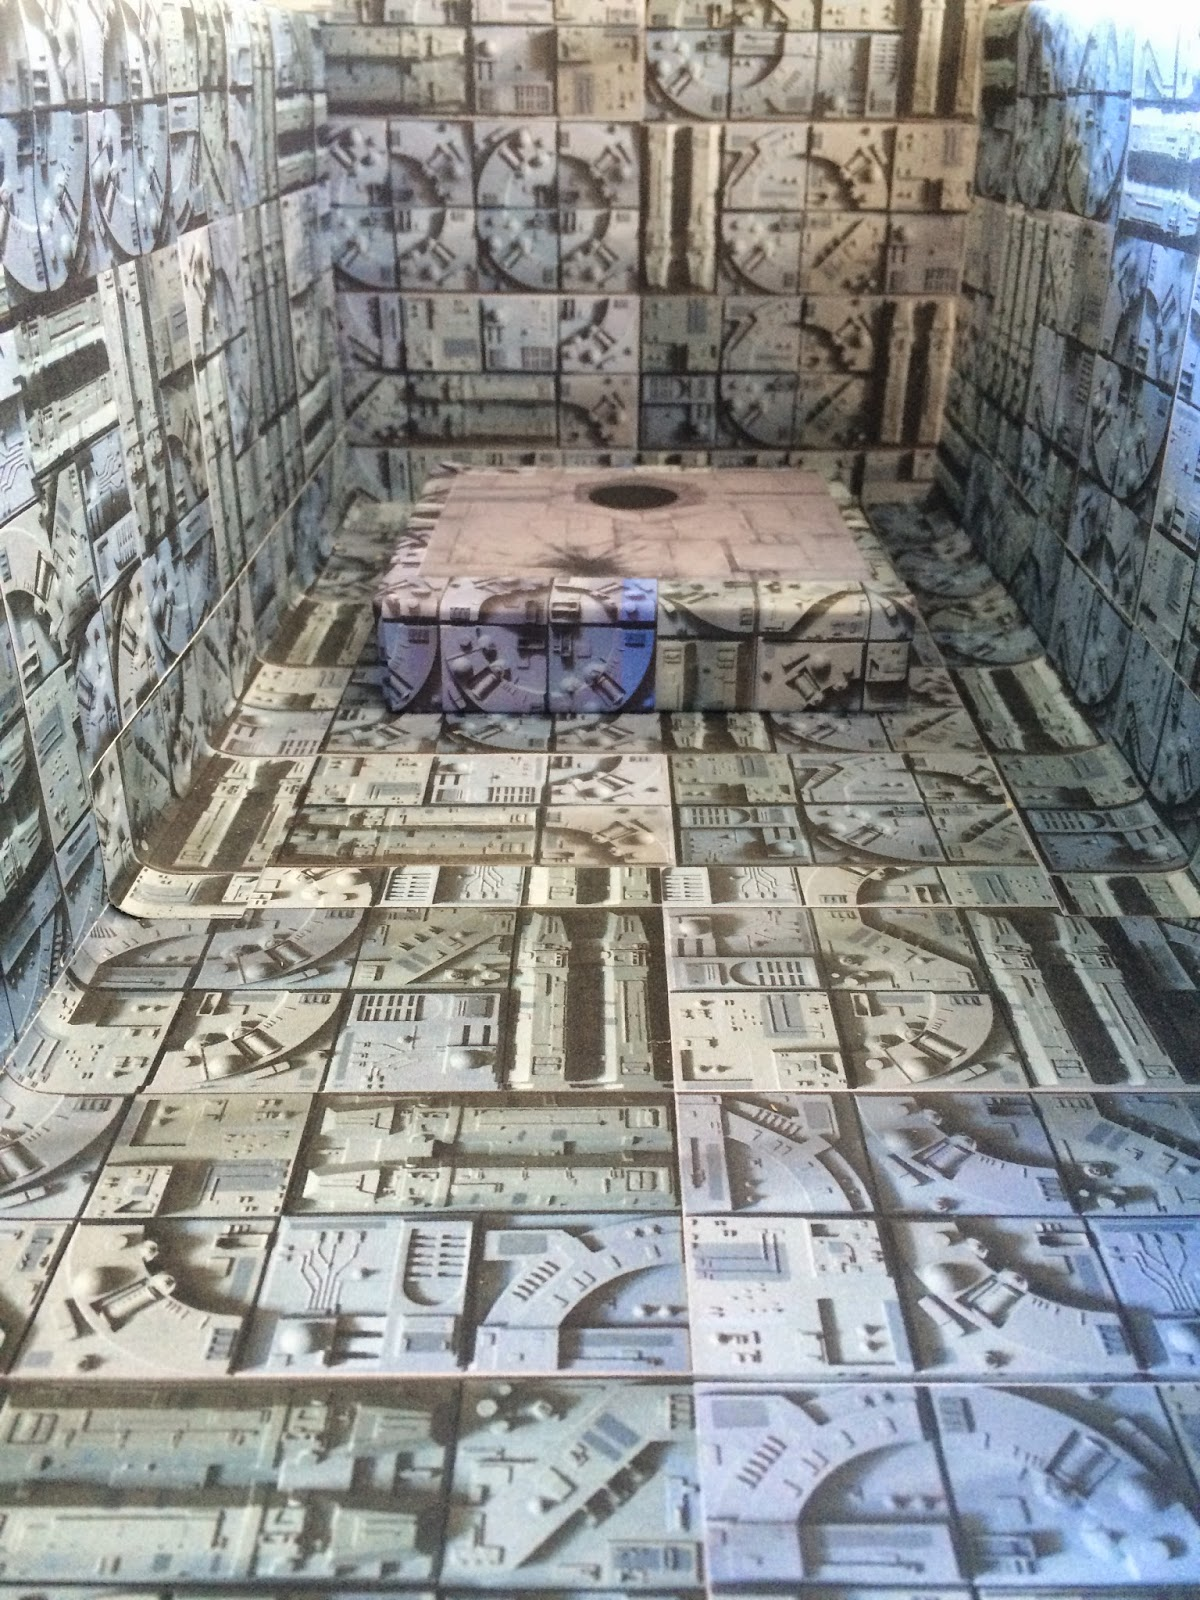 Timbo S Creations Death Star Trench For X Wing Miniture Game